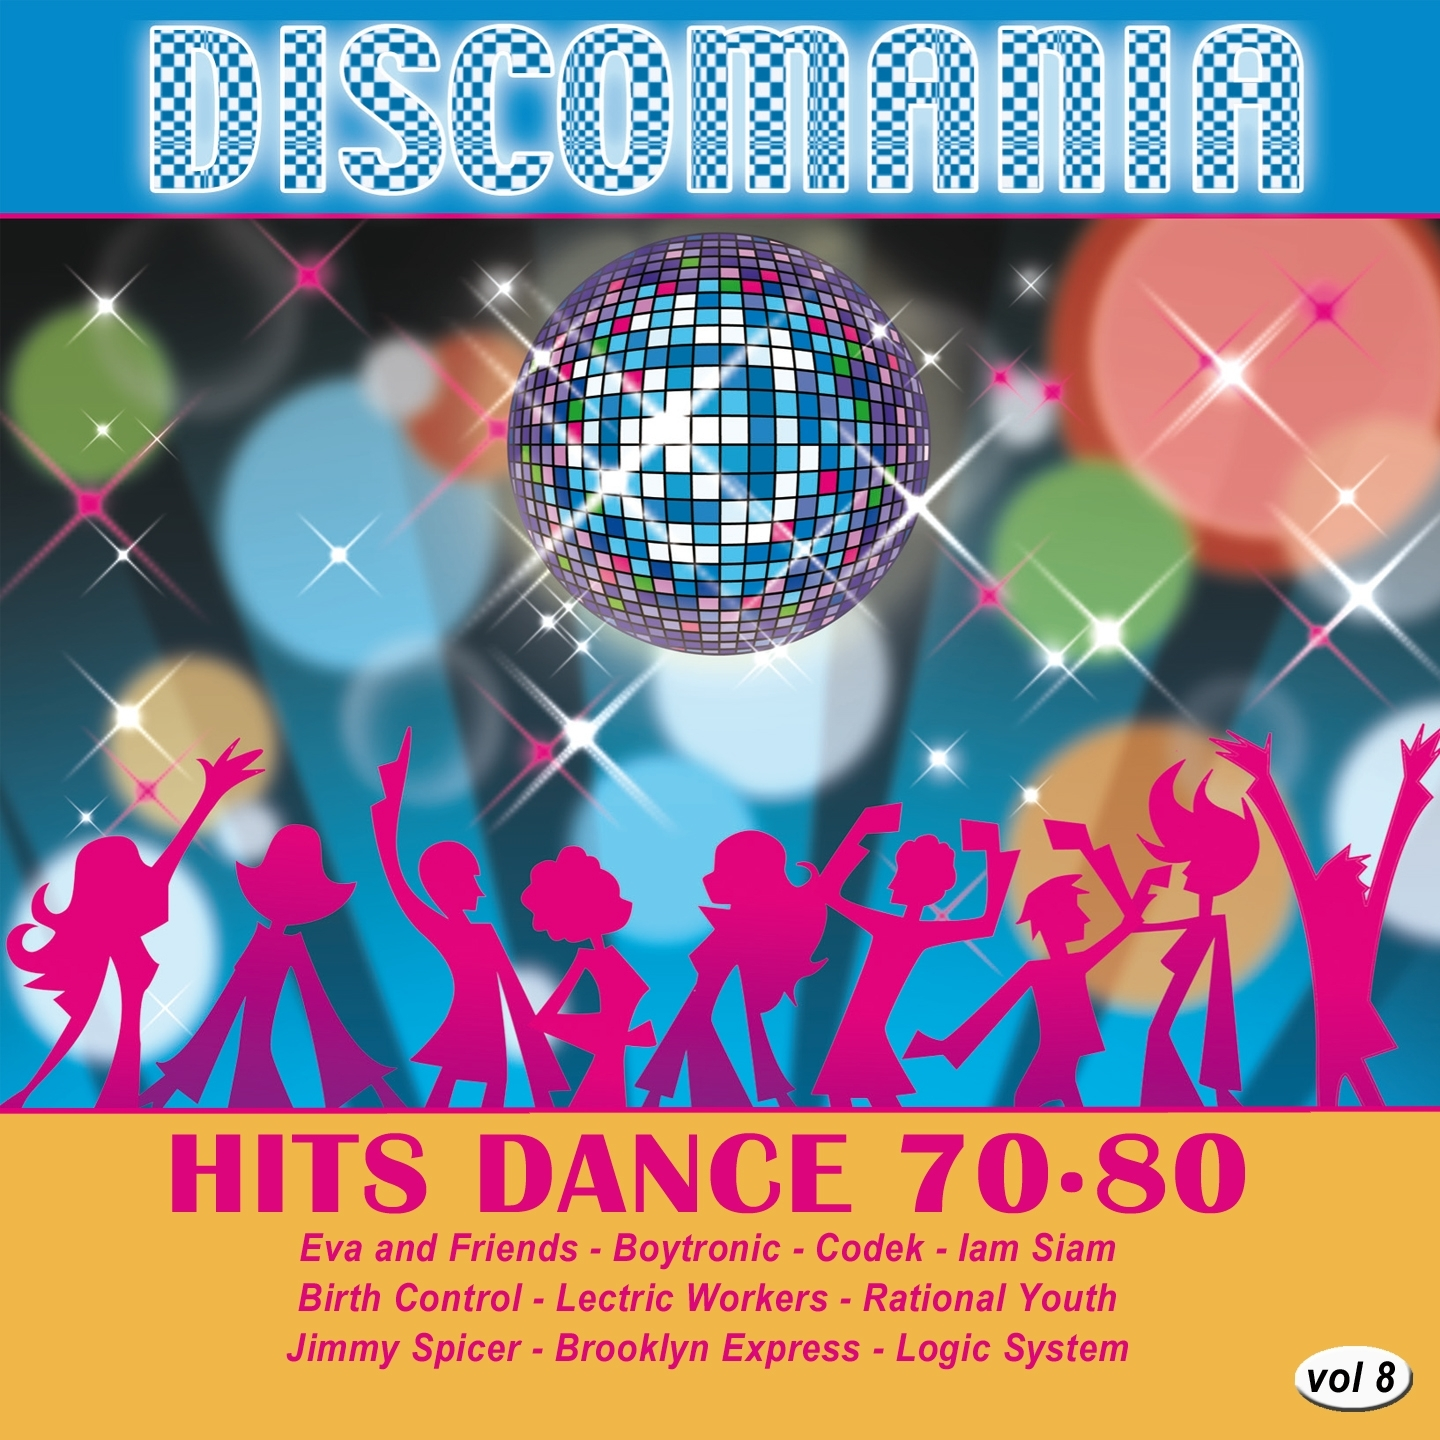 Discomania: Hits Dance 70-80, Vol. 8